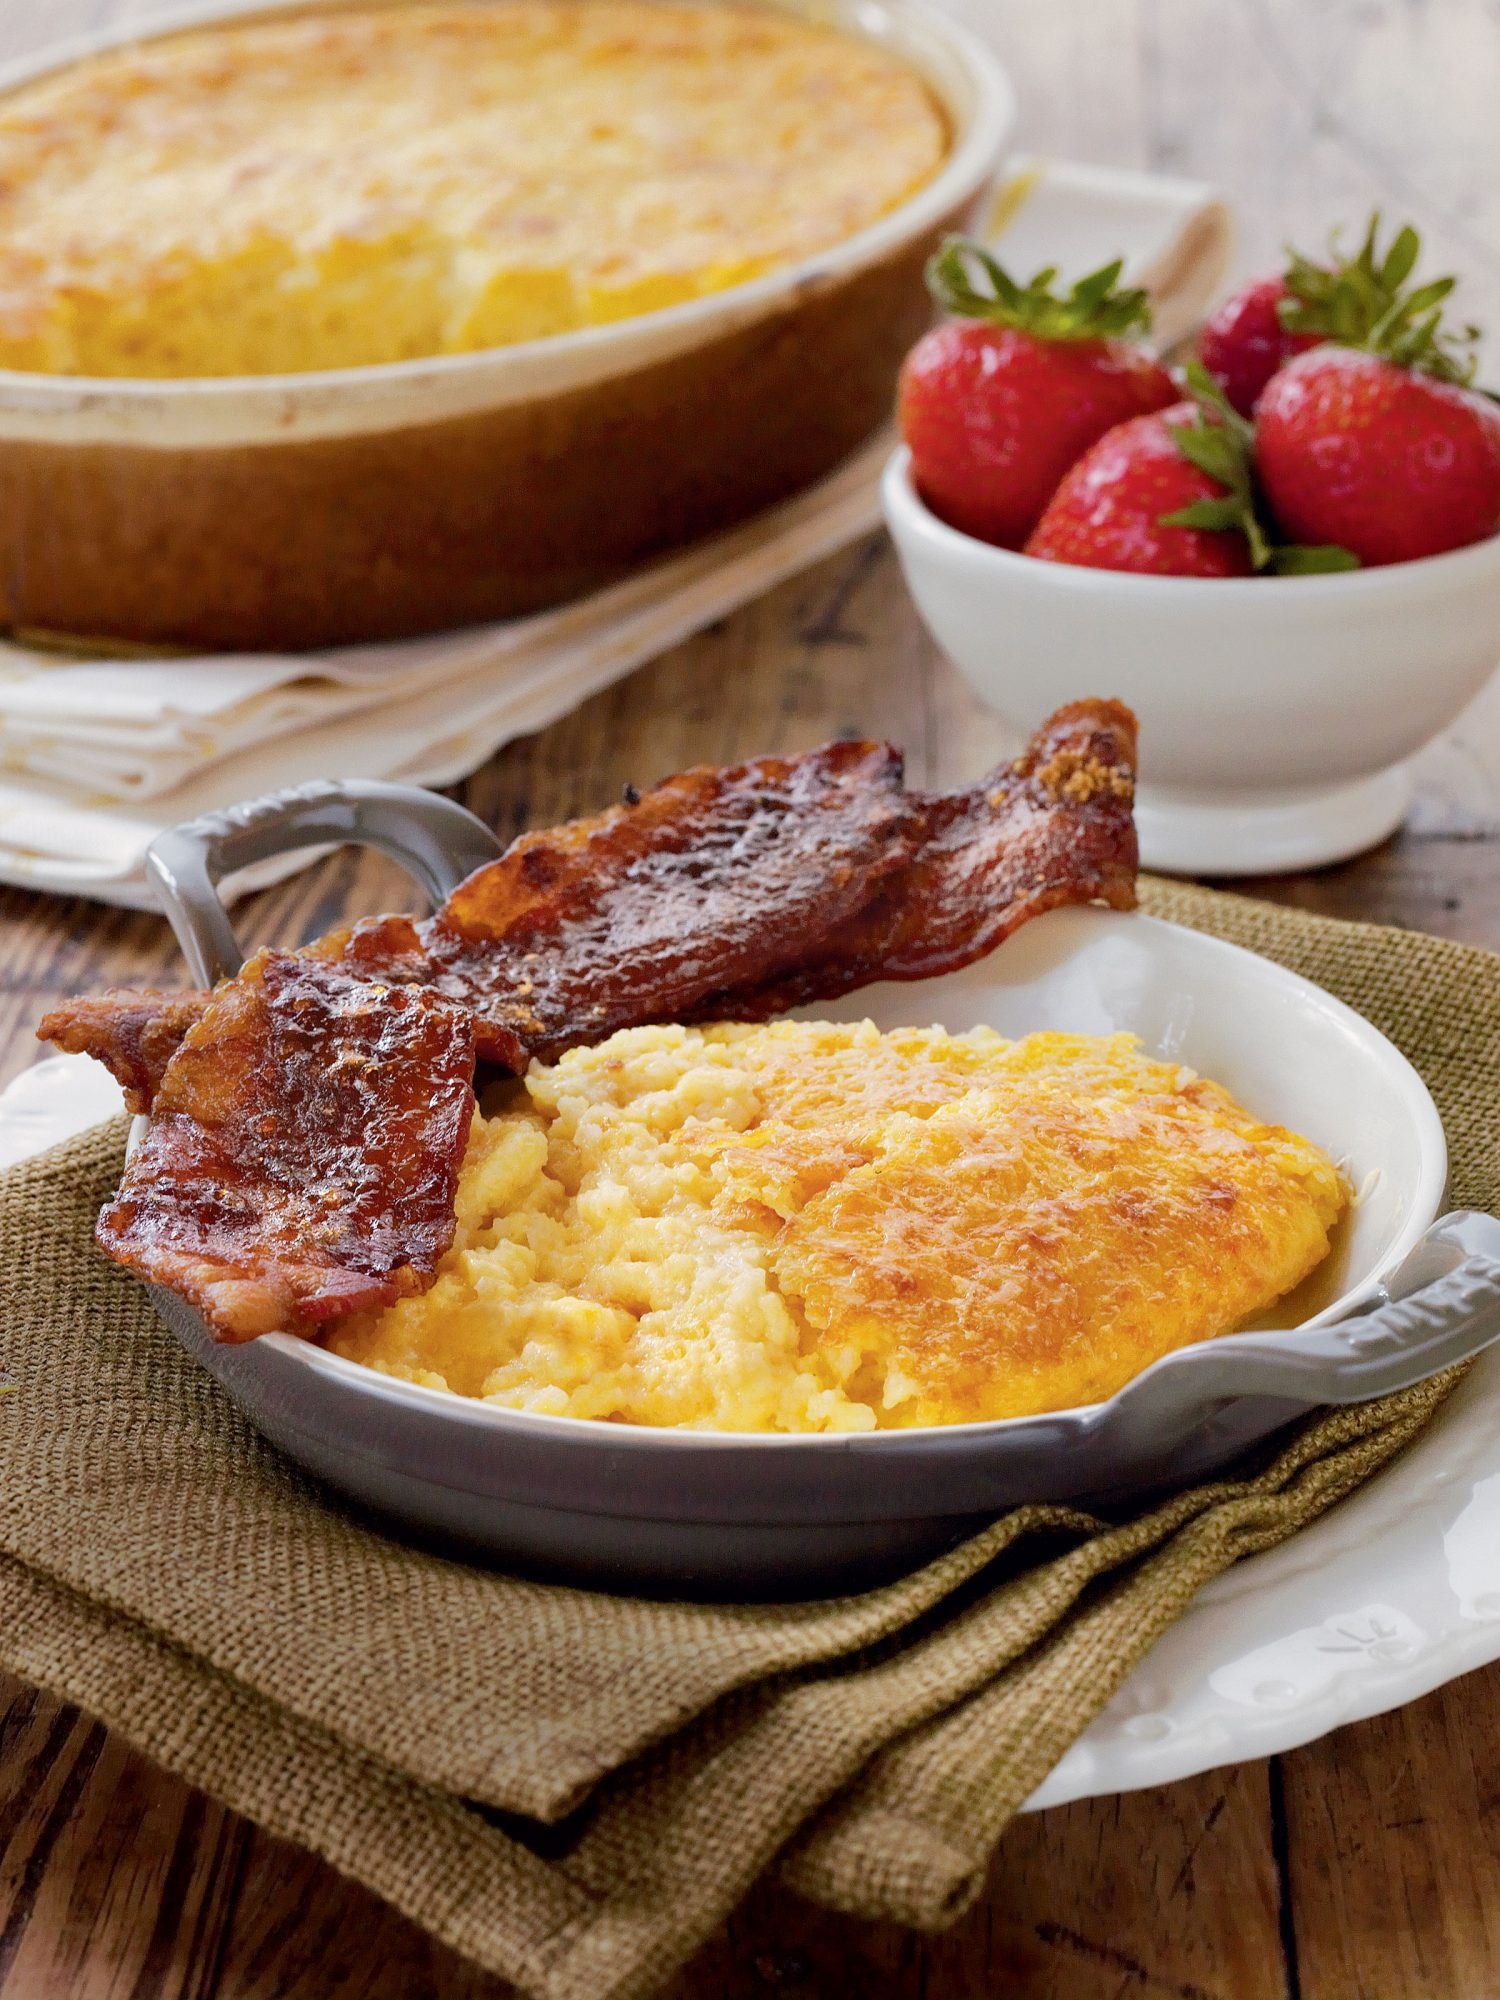 Cheddar Cheese Grits Casserole Recipes